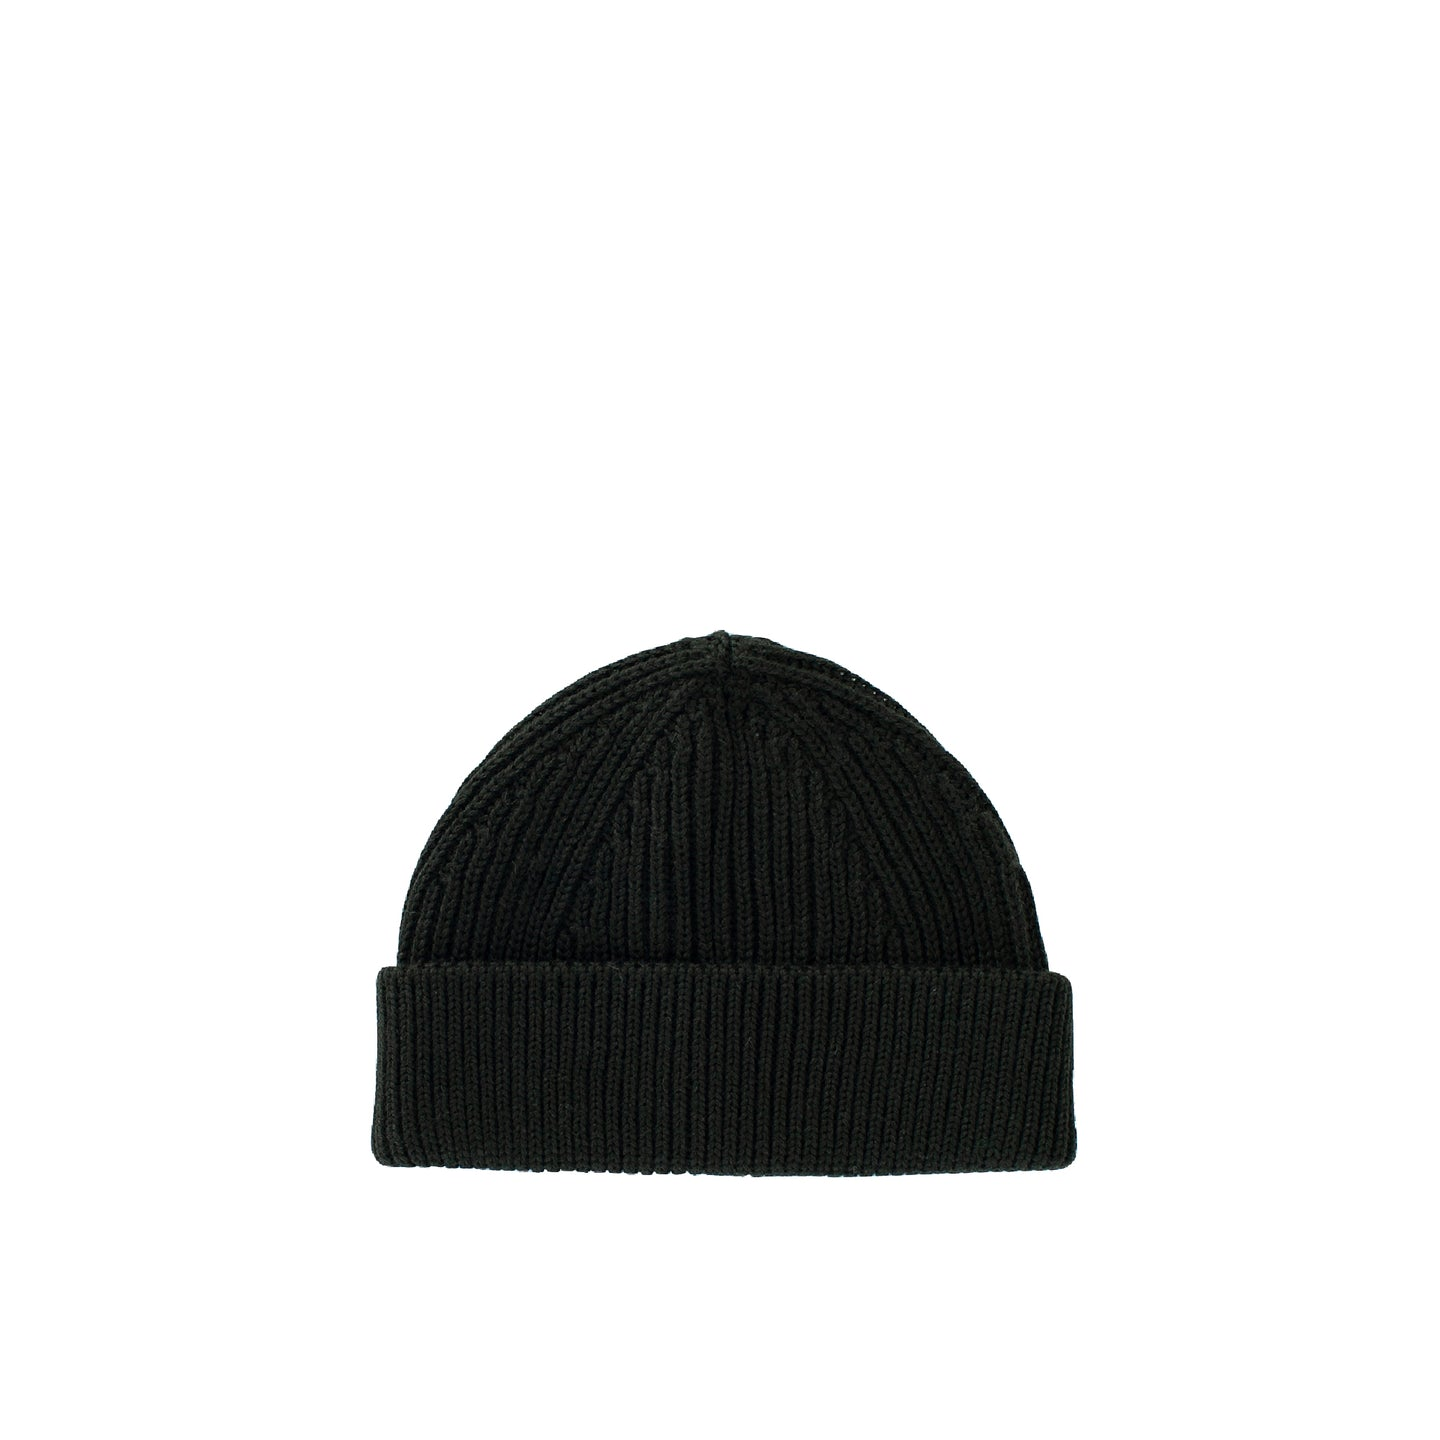 Beanie Short - Hunting Green